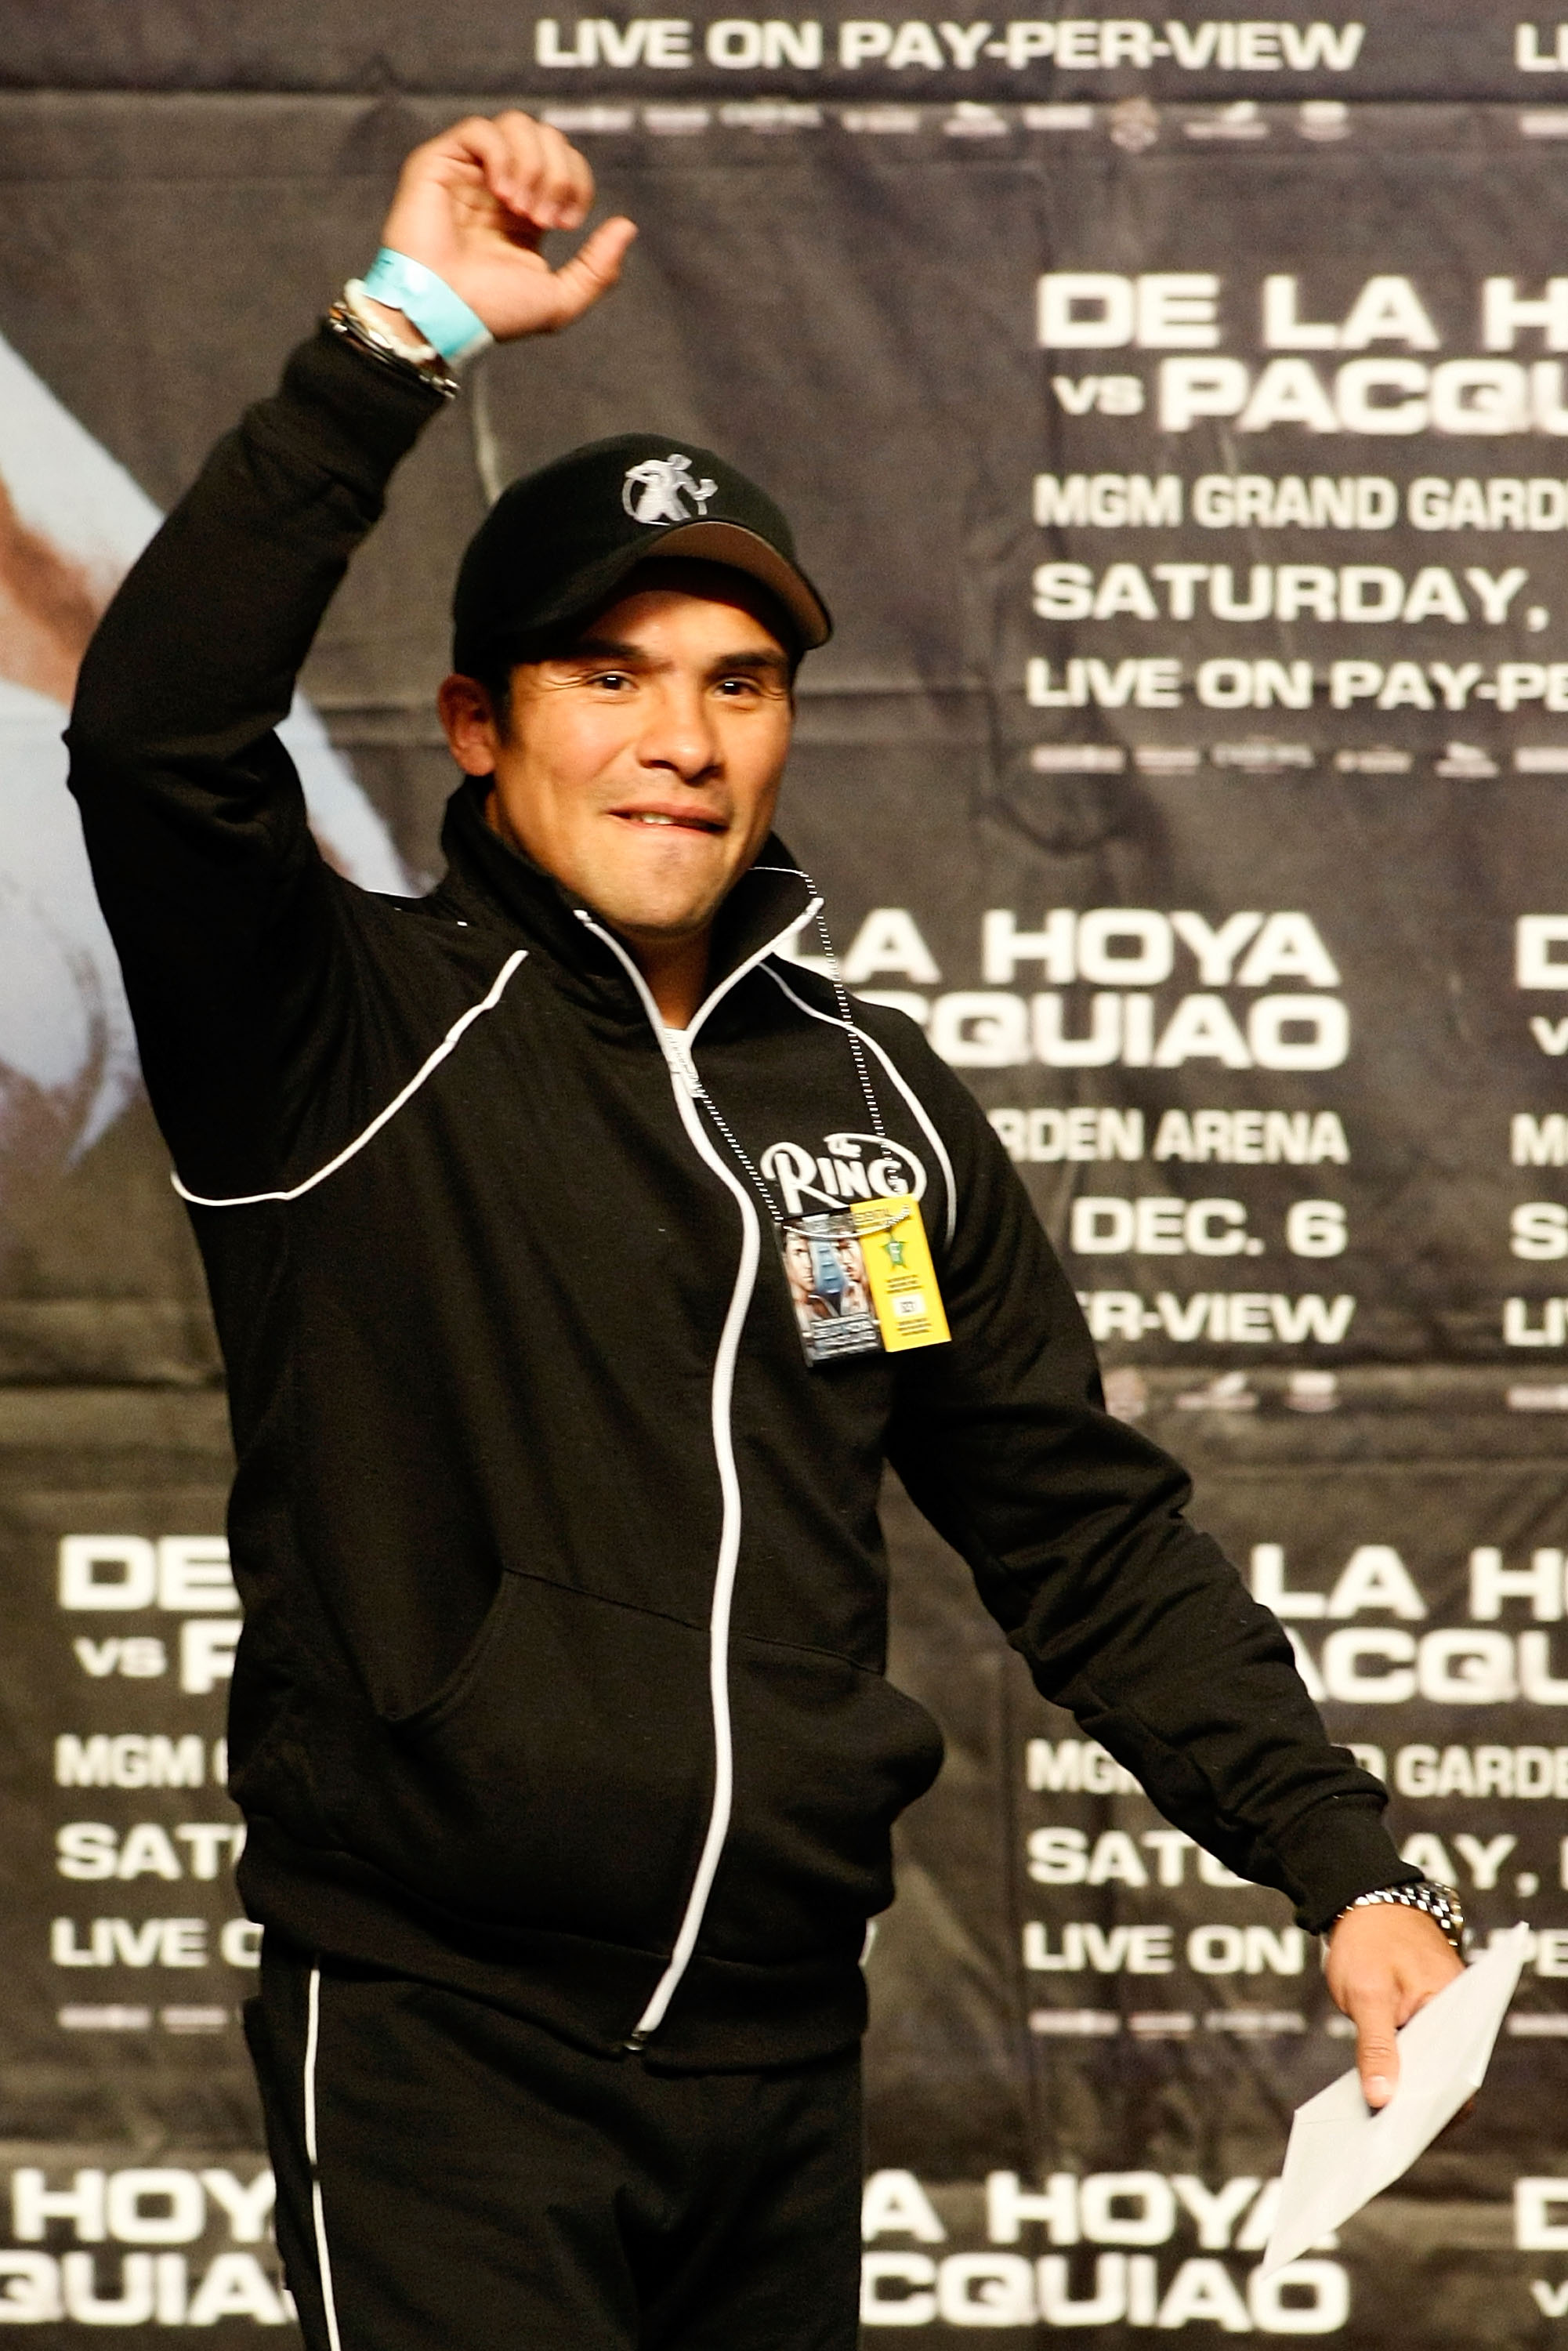 LAS VEGAS - DECEMBER 05:  Boxer Juan Manuel Marquez of Mexico attends the weigh-in for the Oscar De La Hoya and Manny Pacquiao of the Philippines welterweight fight at the MGM Grand Garden Arena December 5, 2008 in Las Vegas, Nevada. De La Hoya fights Pac